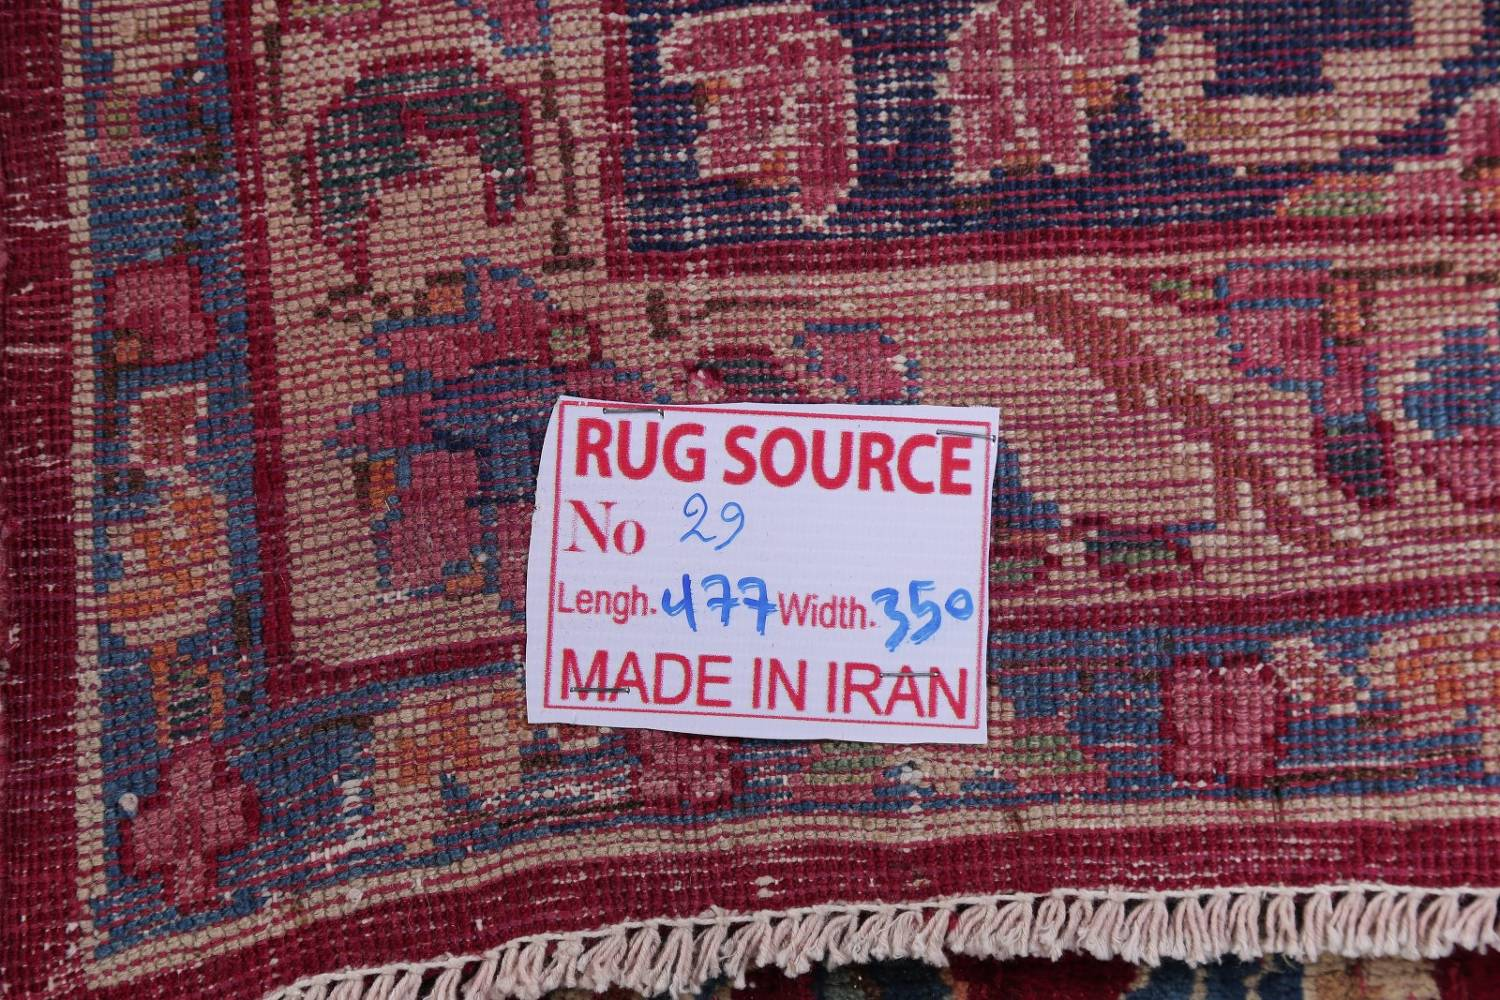 All-Over Floral 11x16 Yazd Persian Area Rug image 26